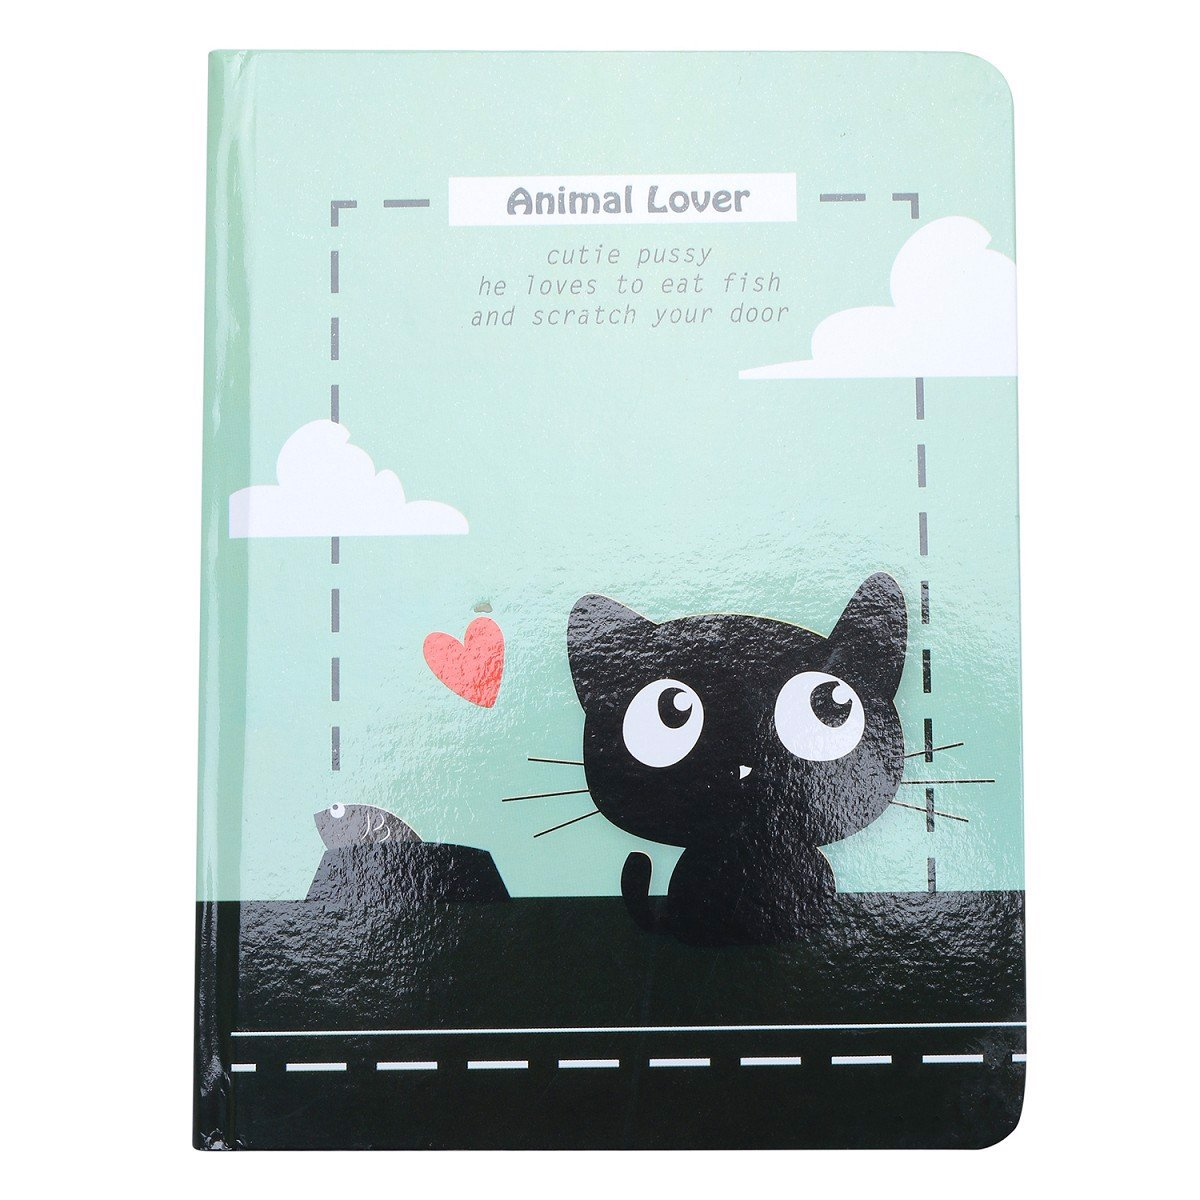 so vivaone bia cung 13 18 meo animal lover